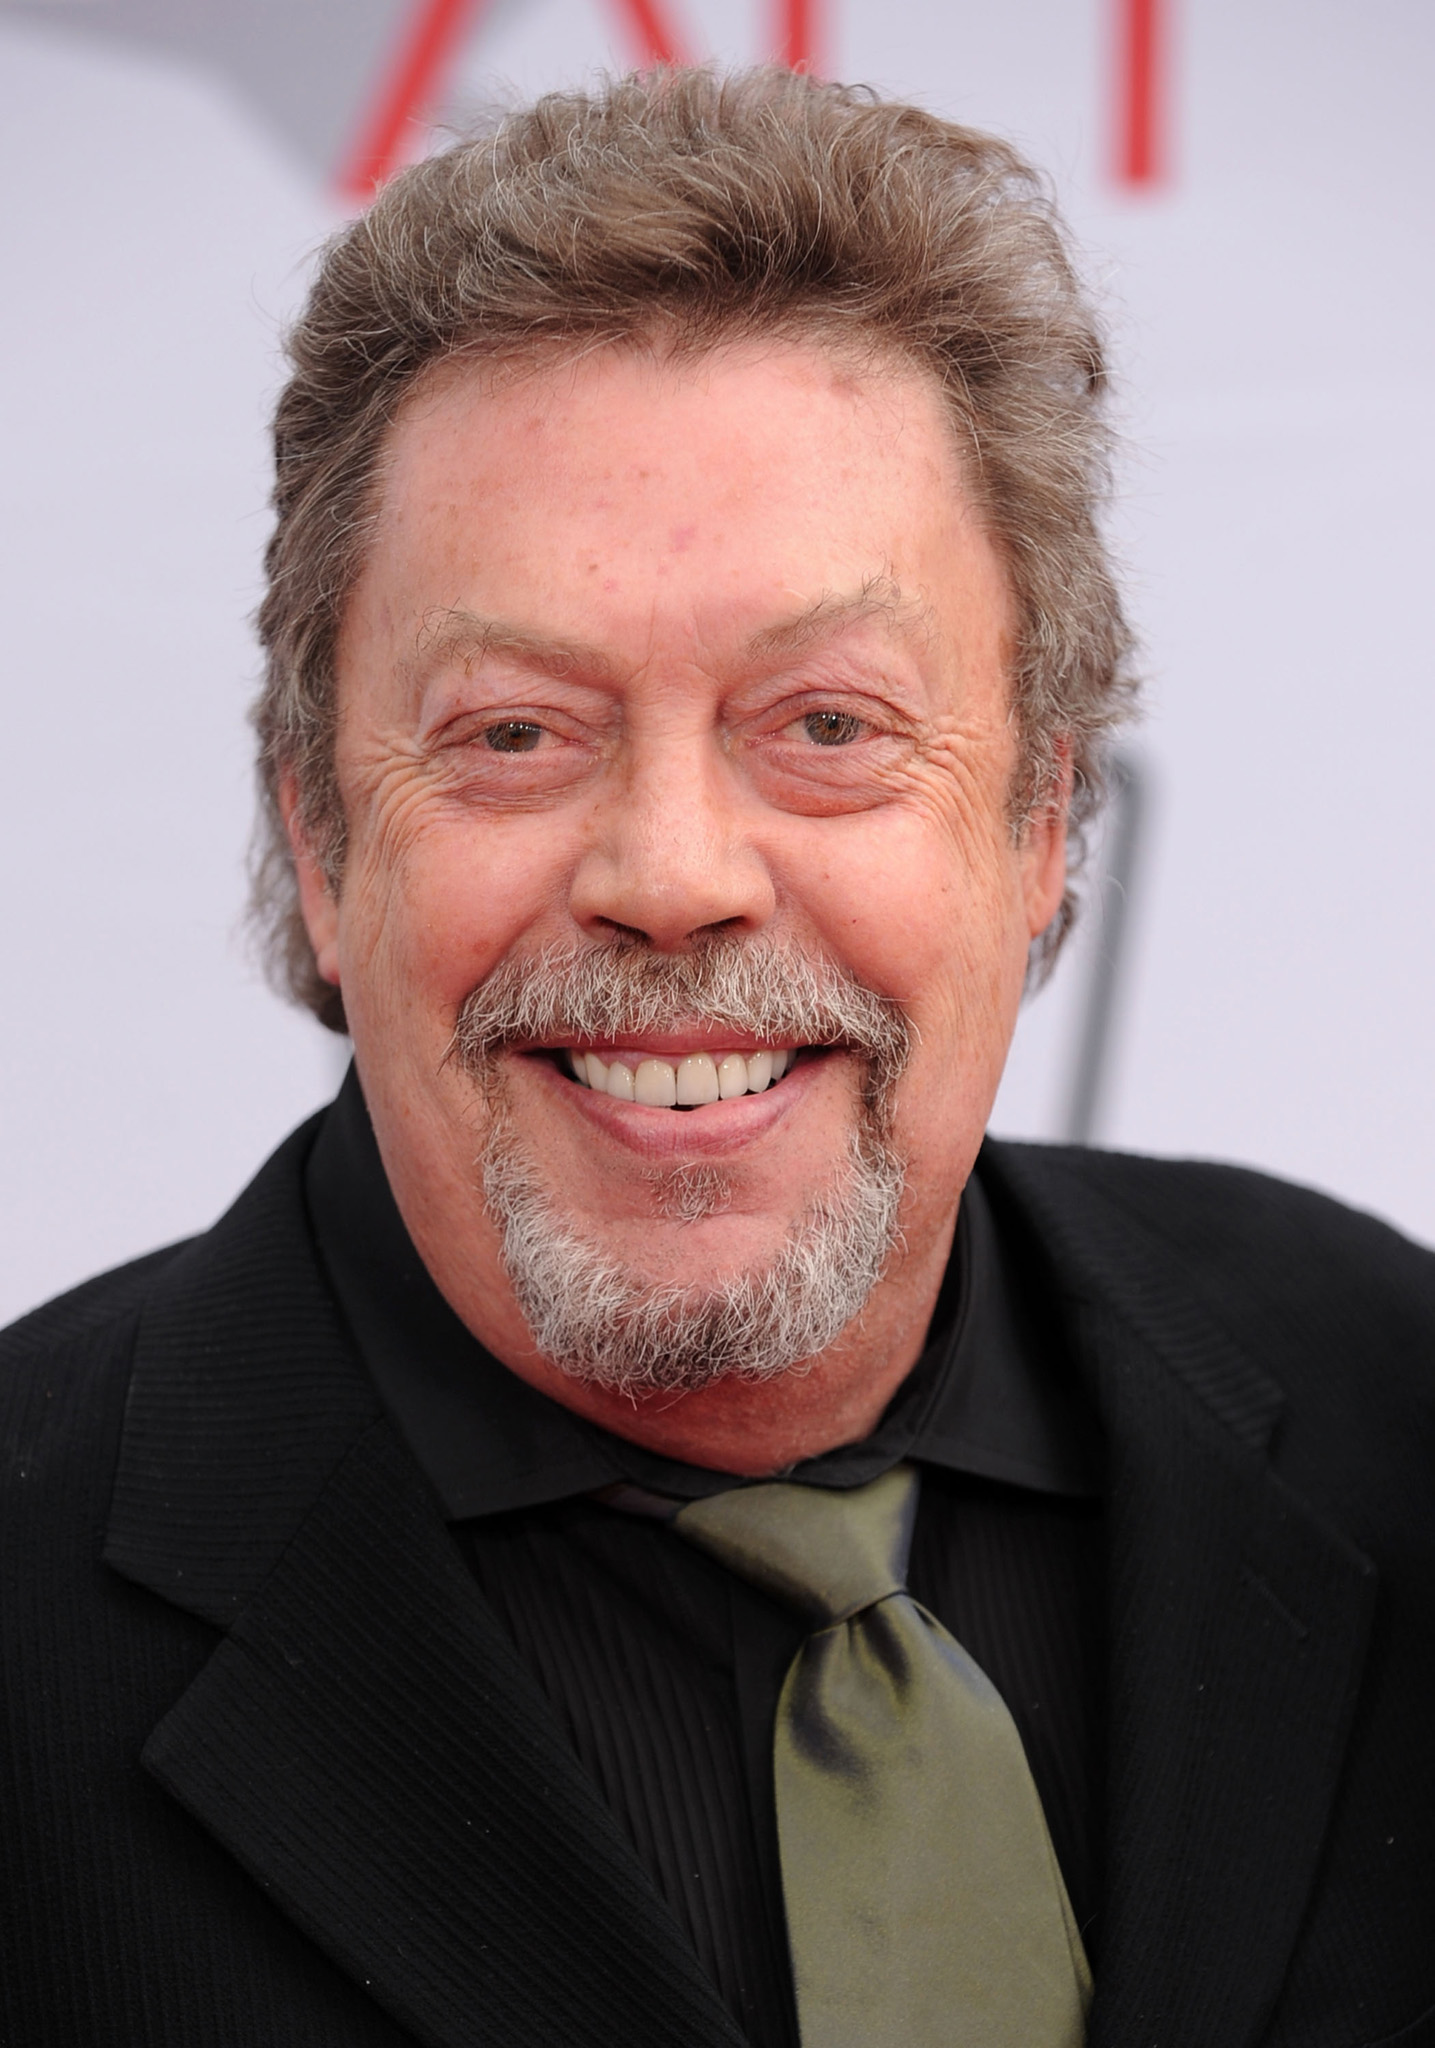 Forum on this topic: Christopher Jacot, tim-curry-born-1946/